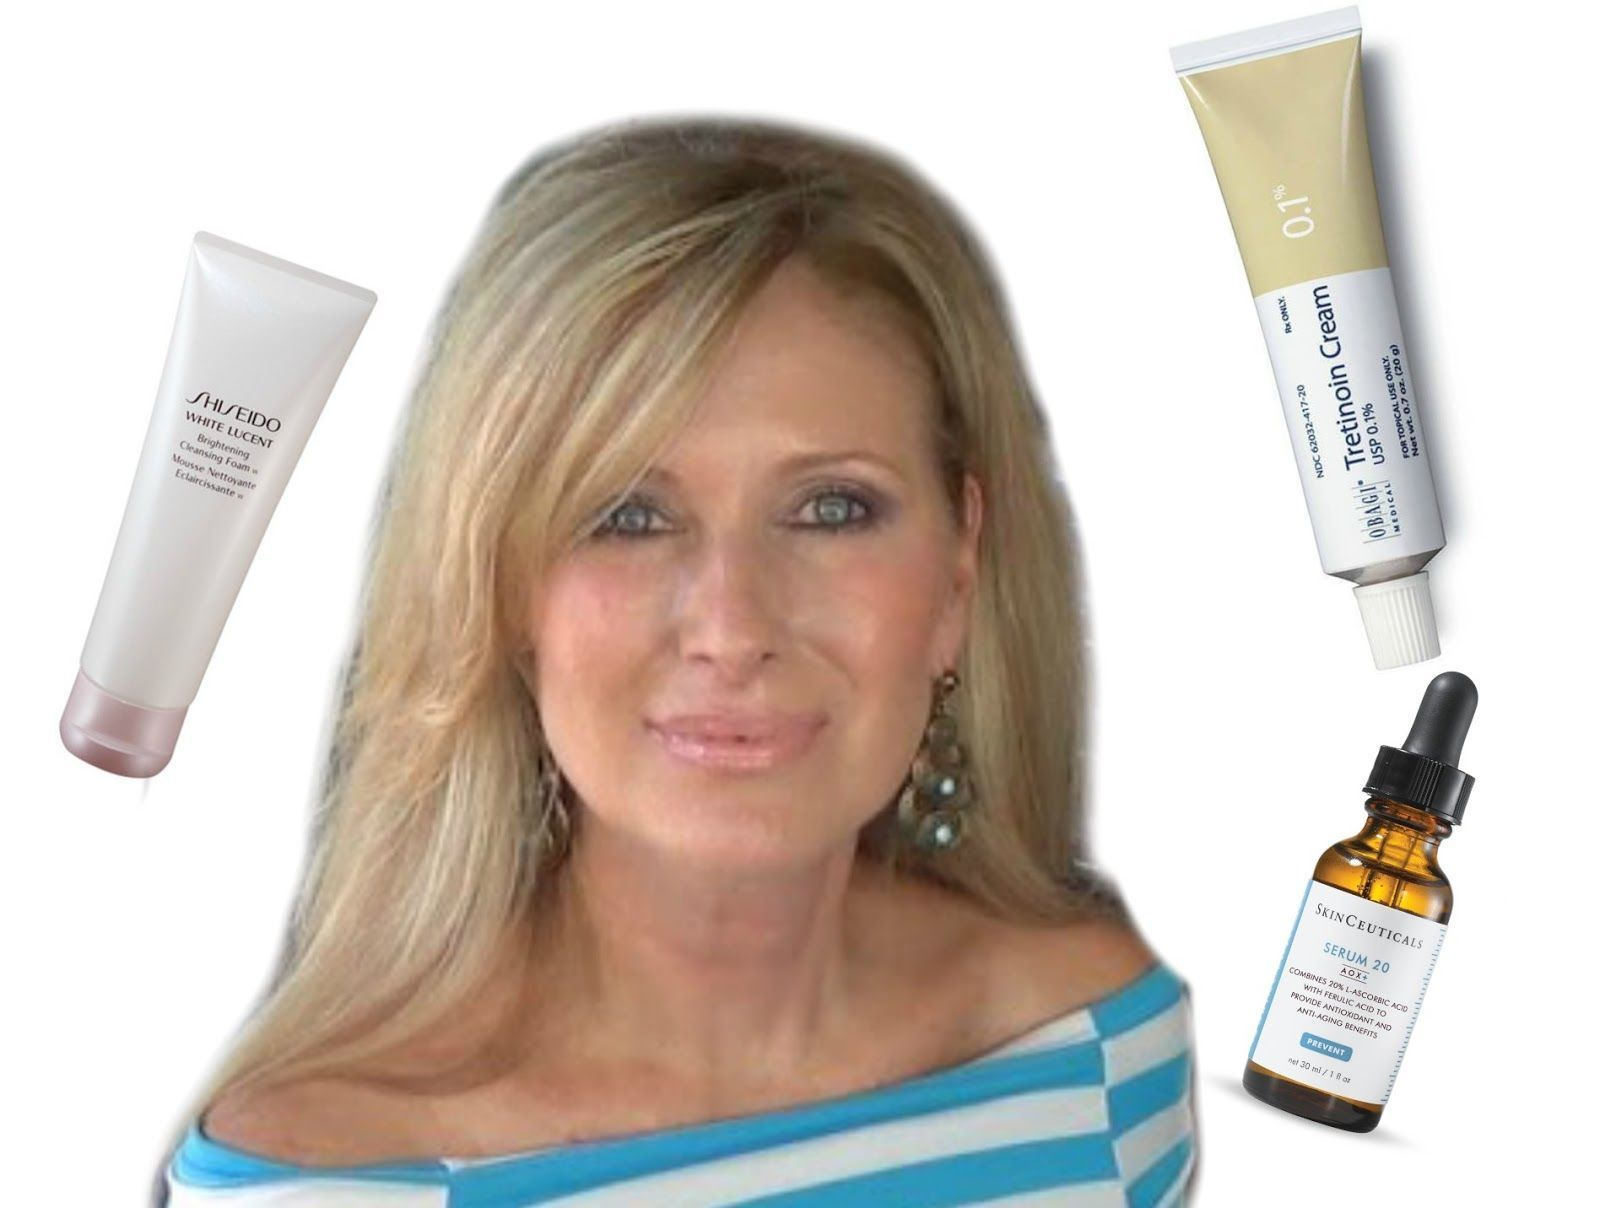 Most Gorgeous 60 Year Old Reveals Her Skin Care Secrets This Is The Best Anti Aging Skin Care Routine Ev In 2020